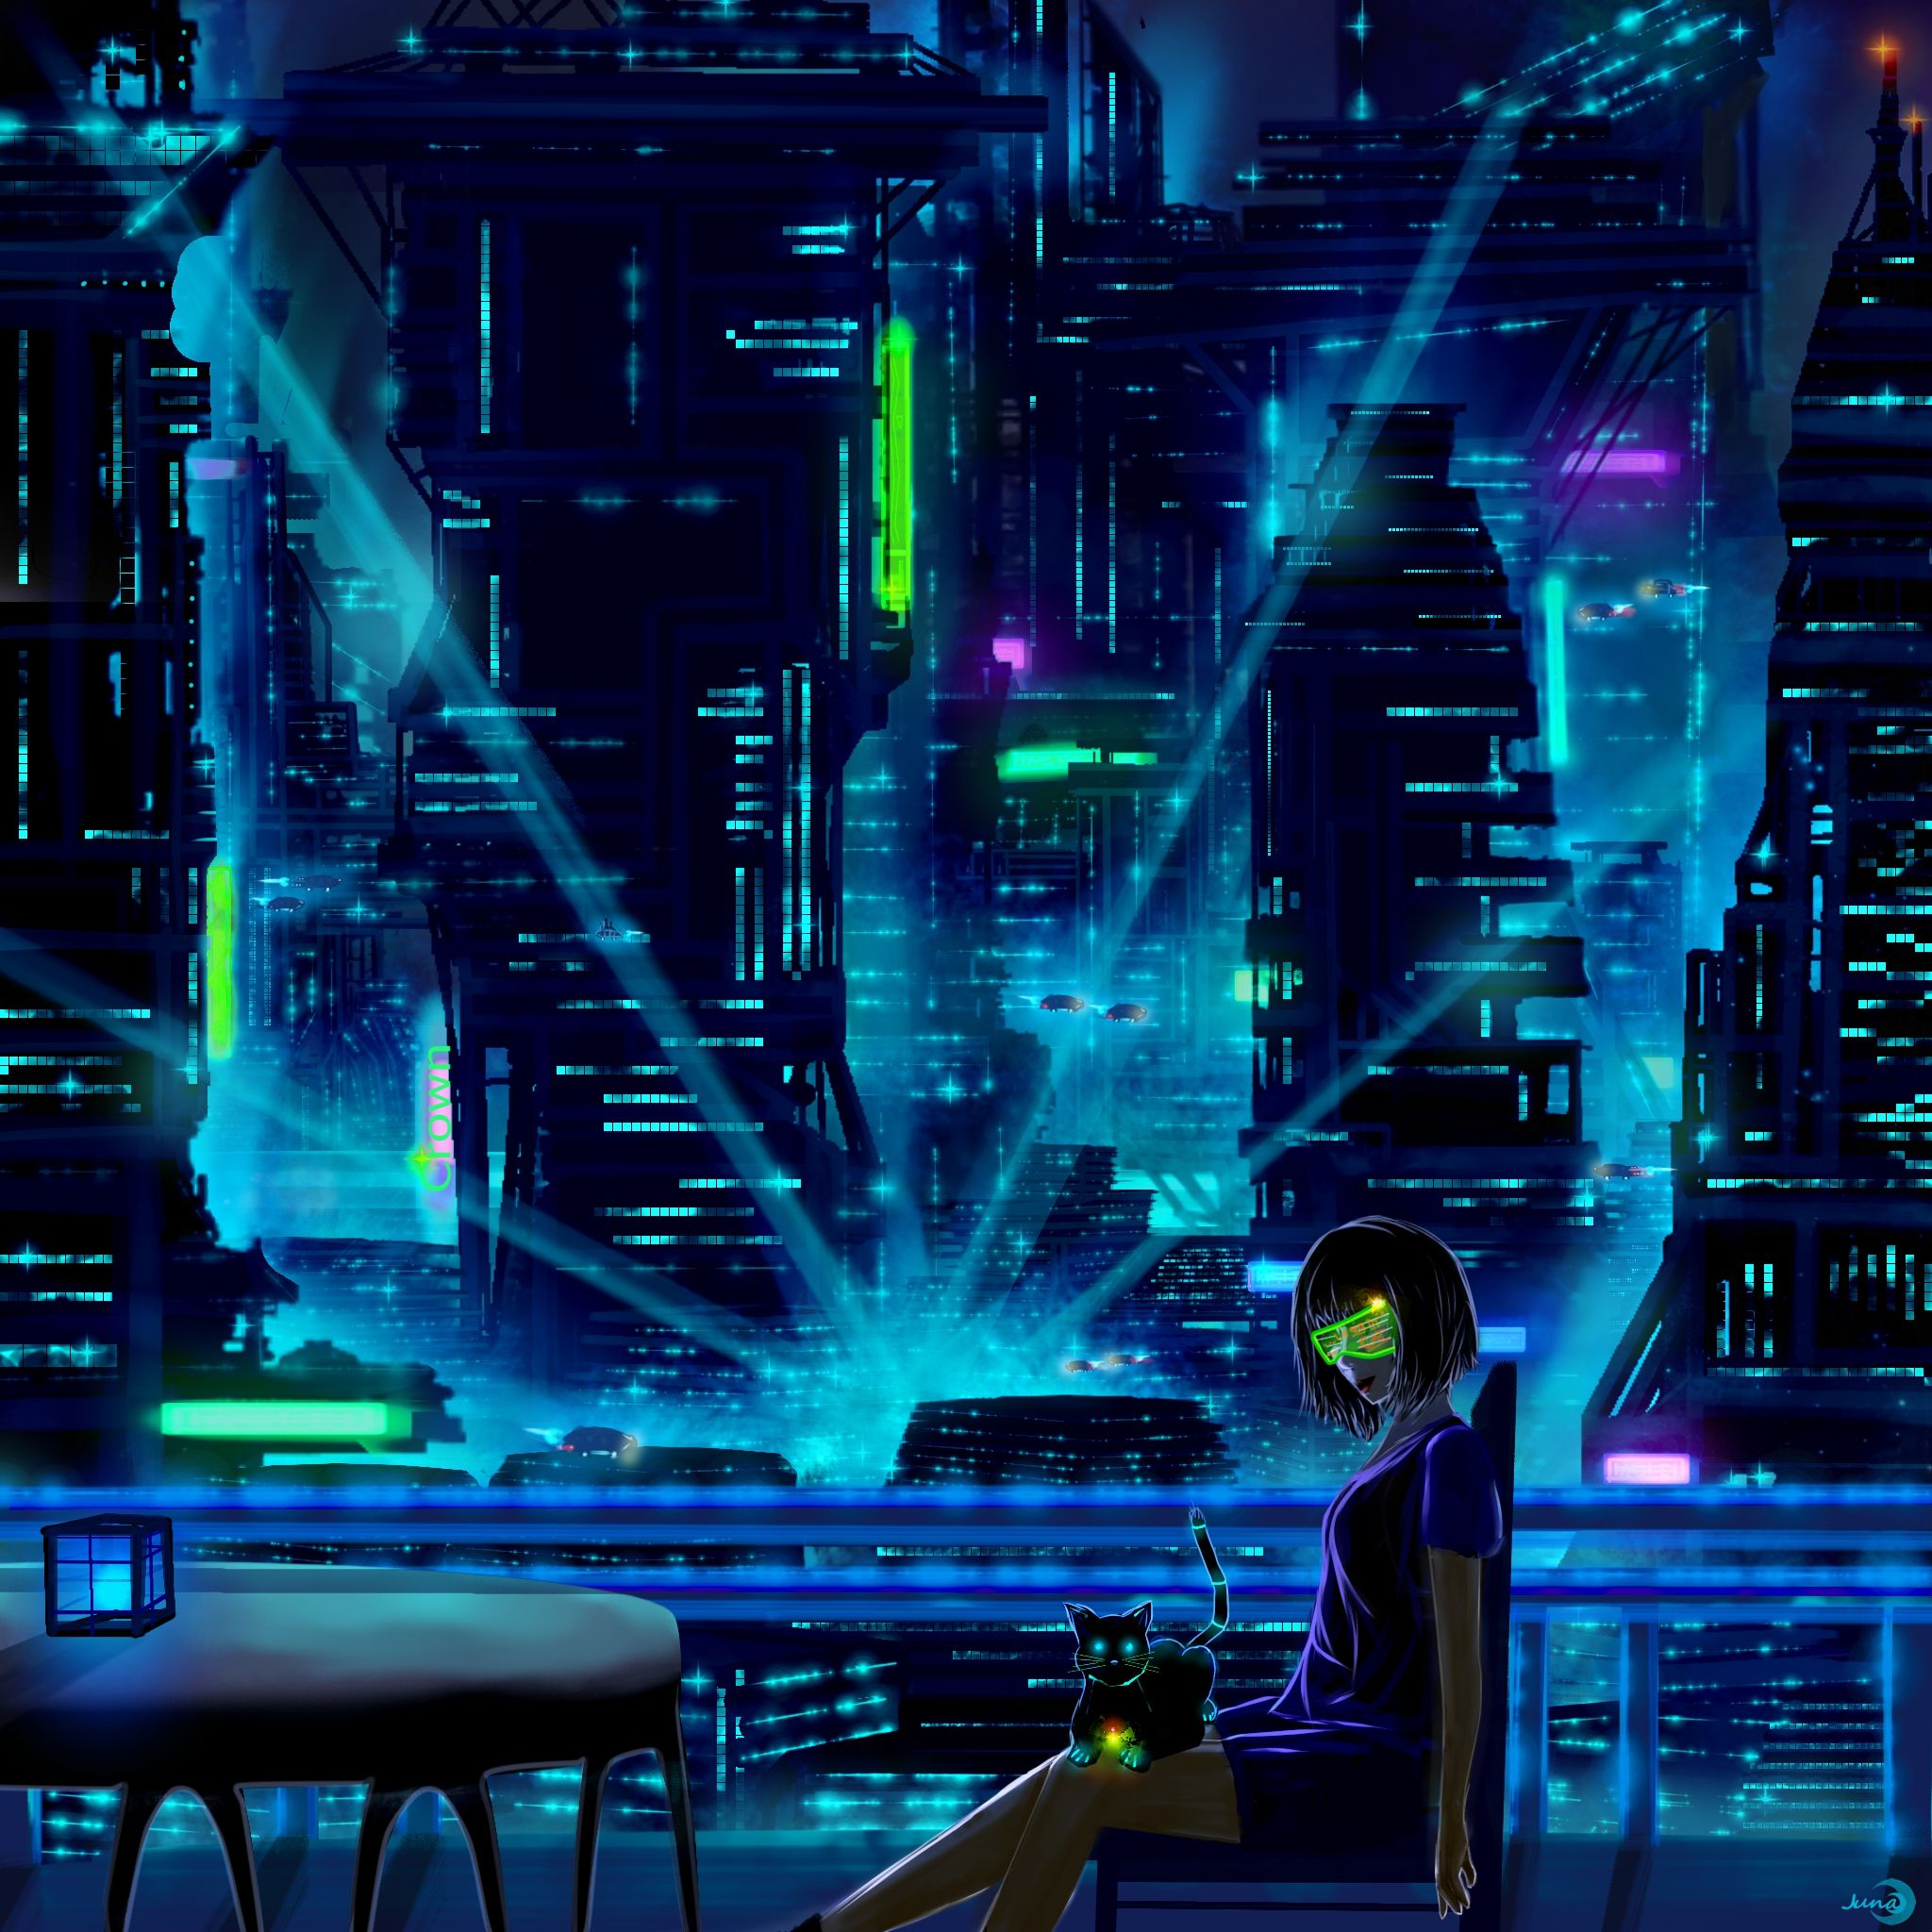 Cyber City by Mondmaedle on deviantART and Pinterest